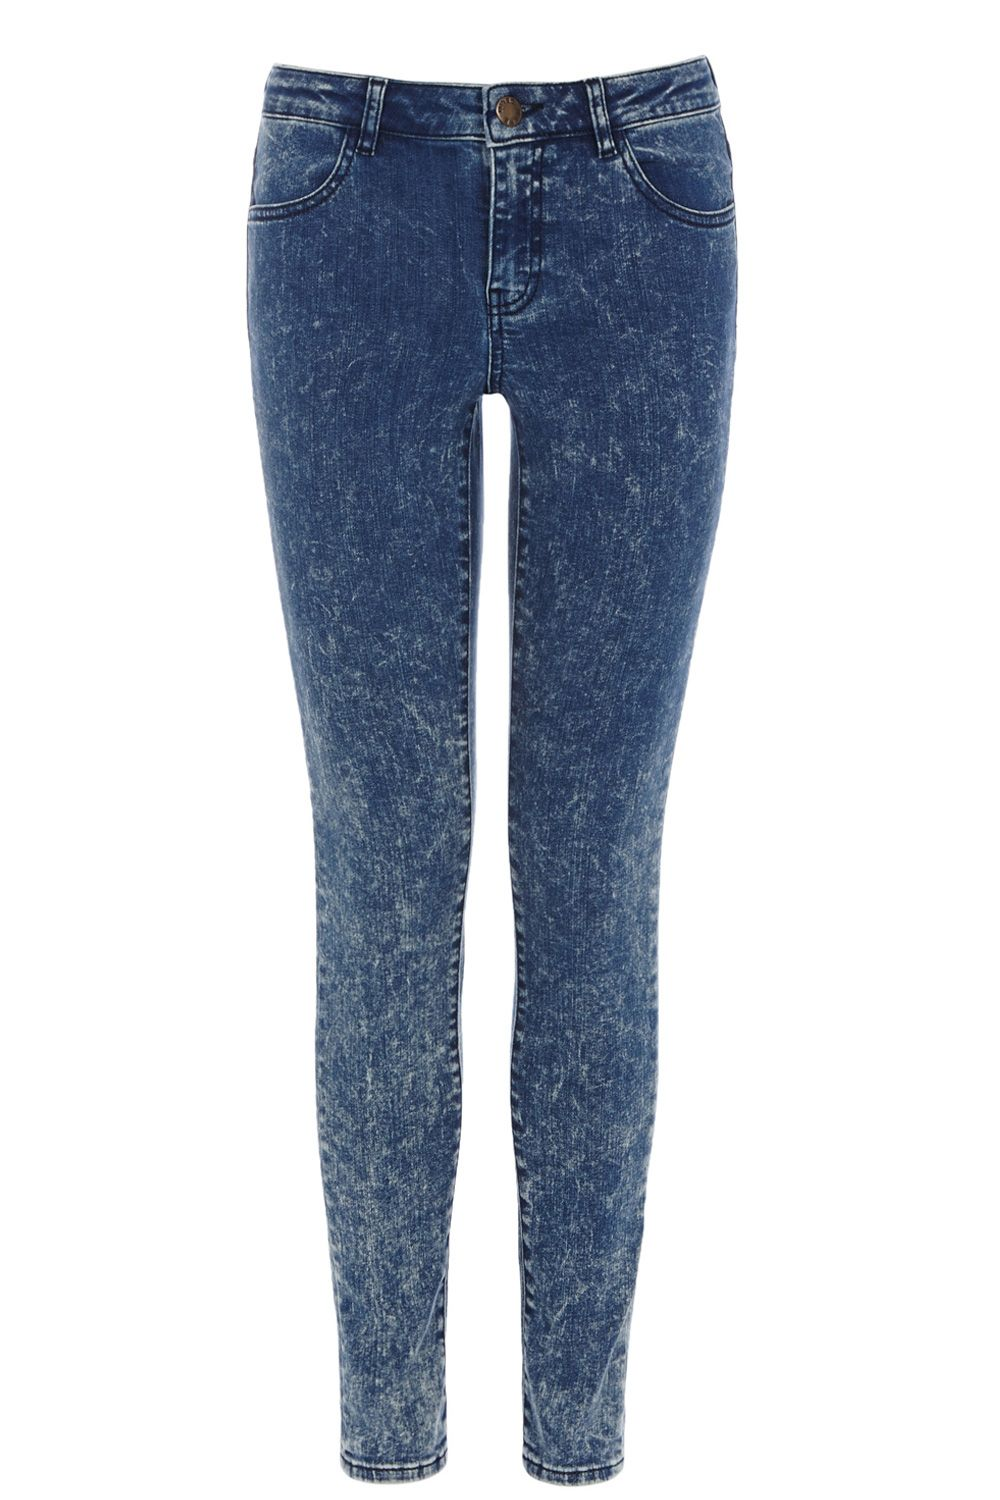 Acid splash jeans